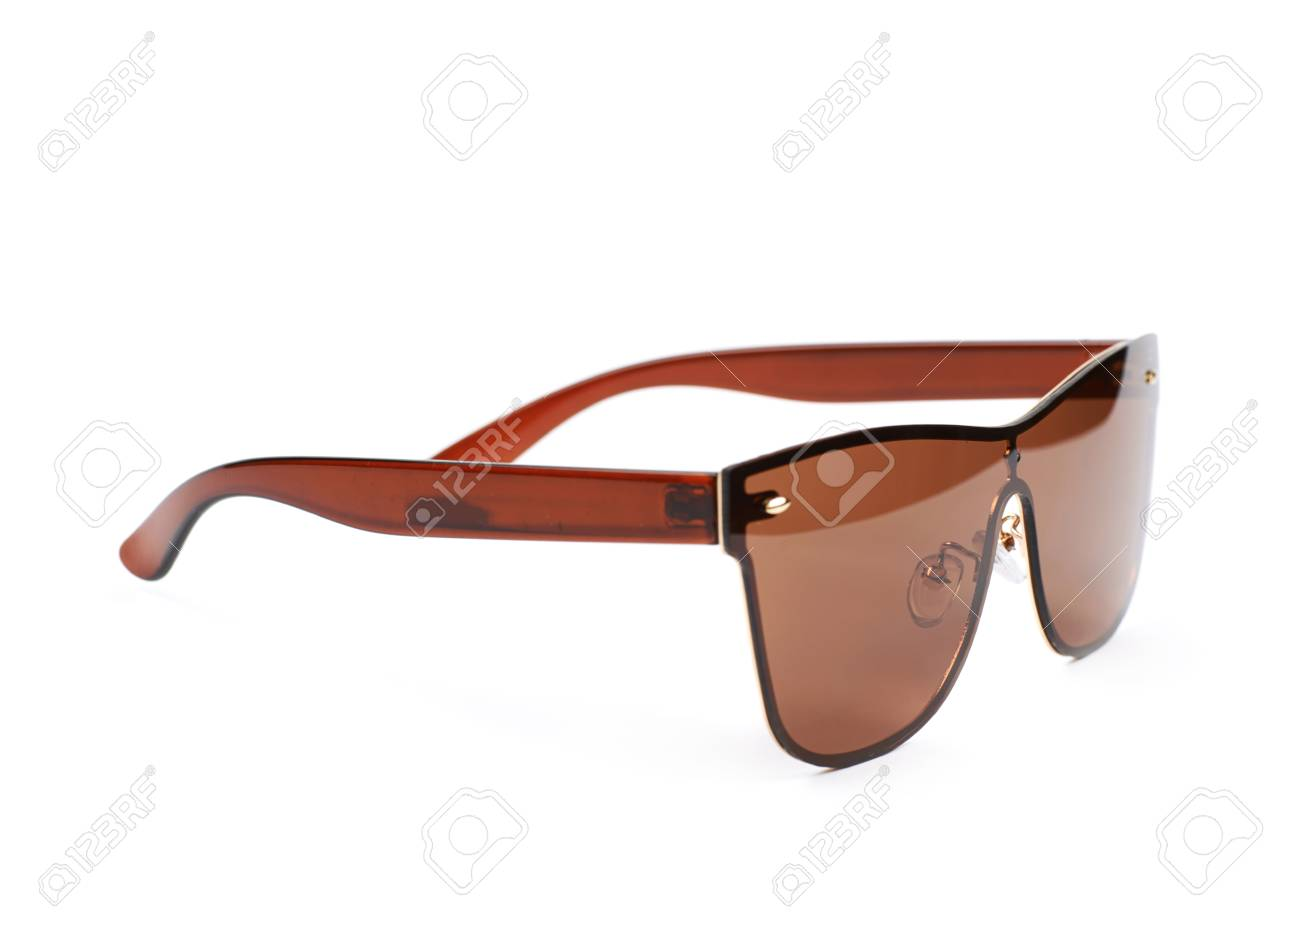 7fb77abb3e7 Pair of brown shade sunglasses isolated over the white background Stock  Photo - 61261409